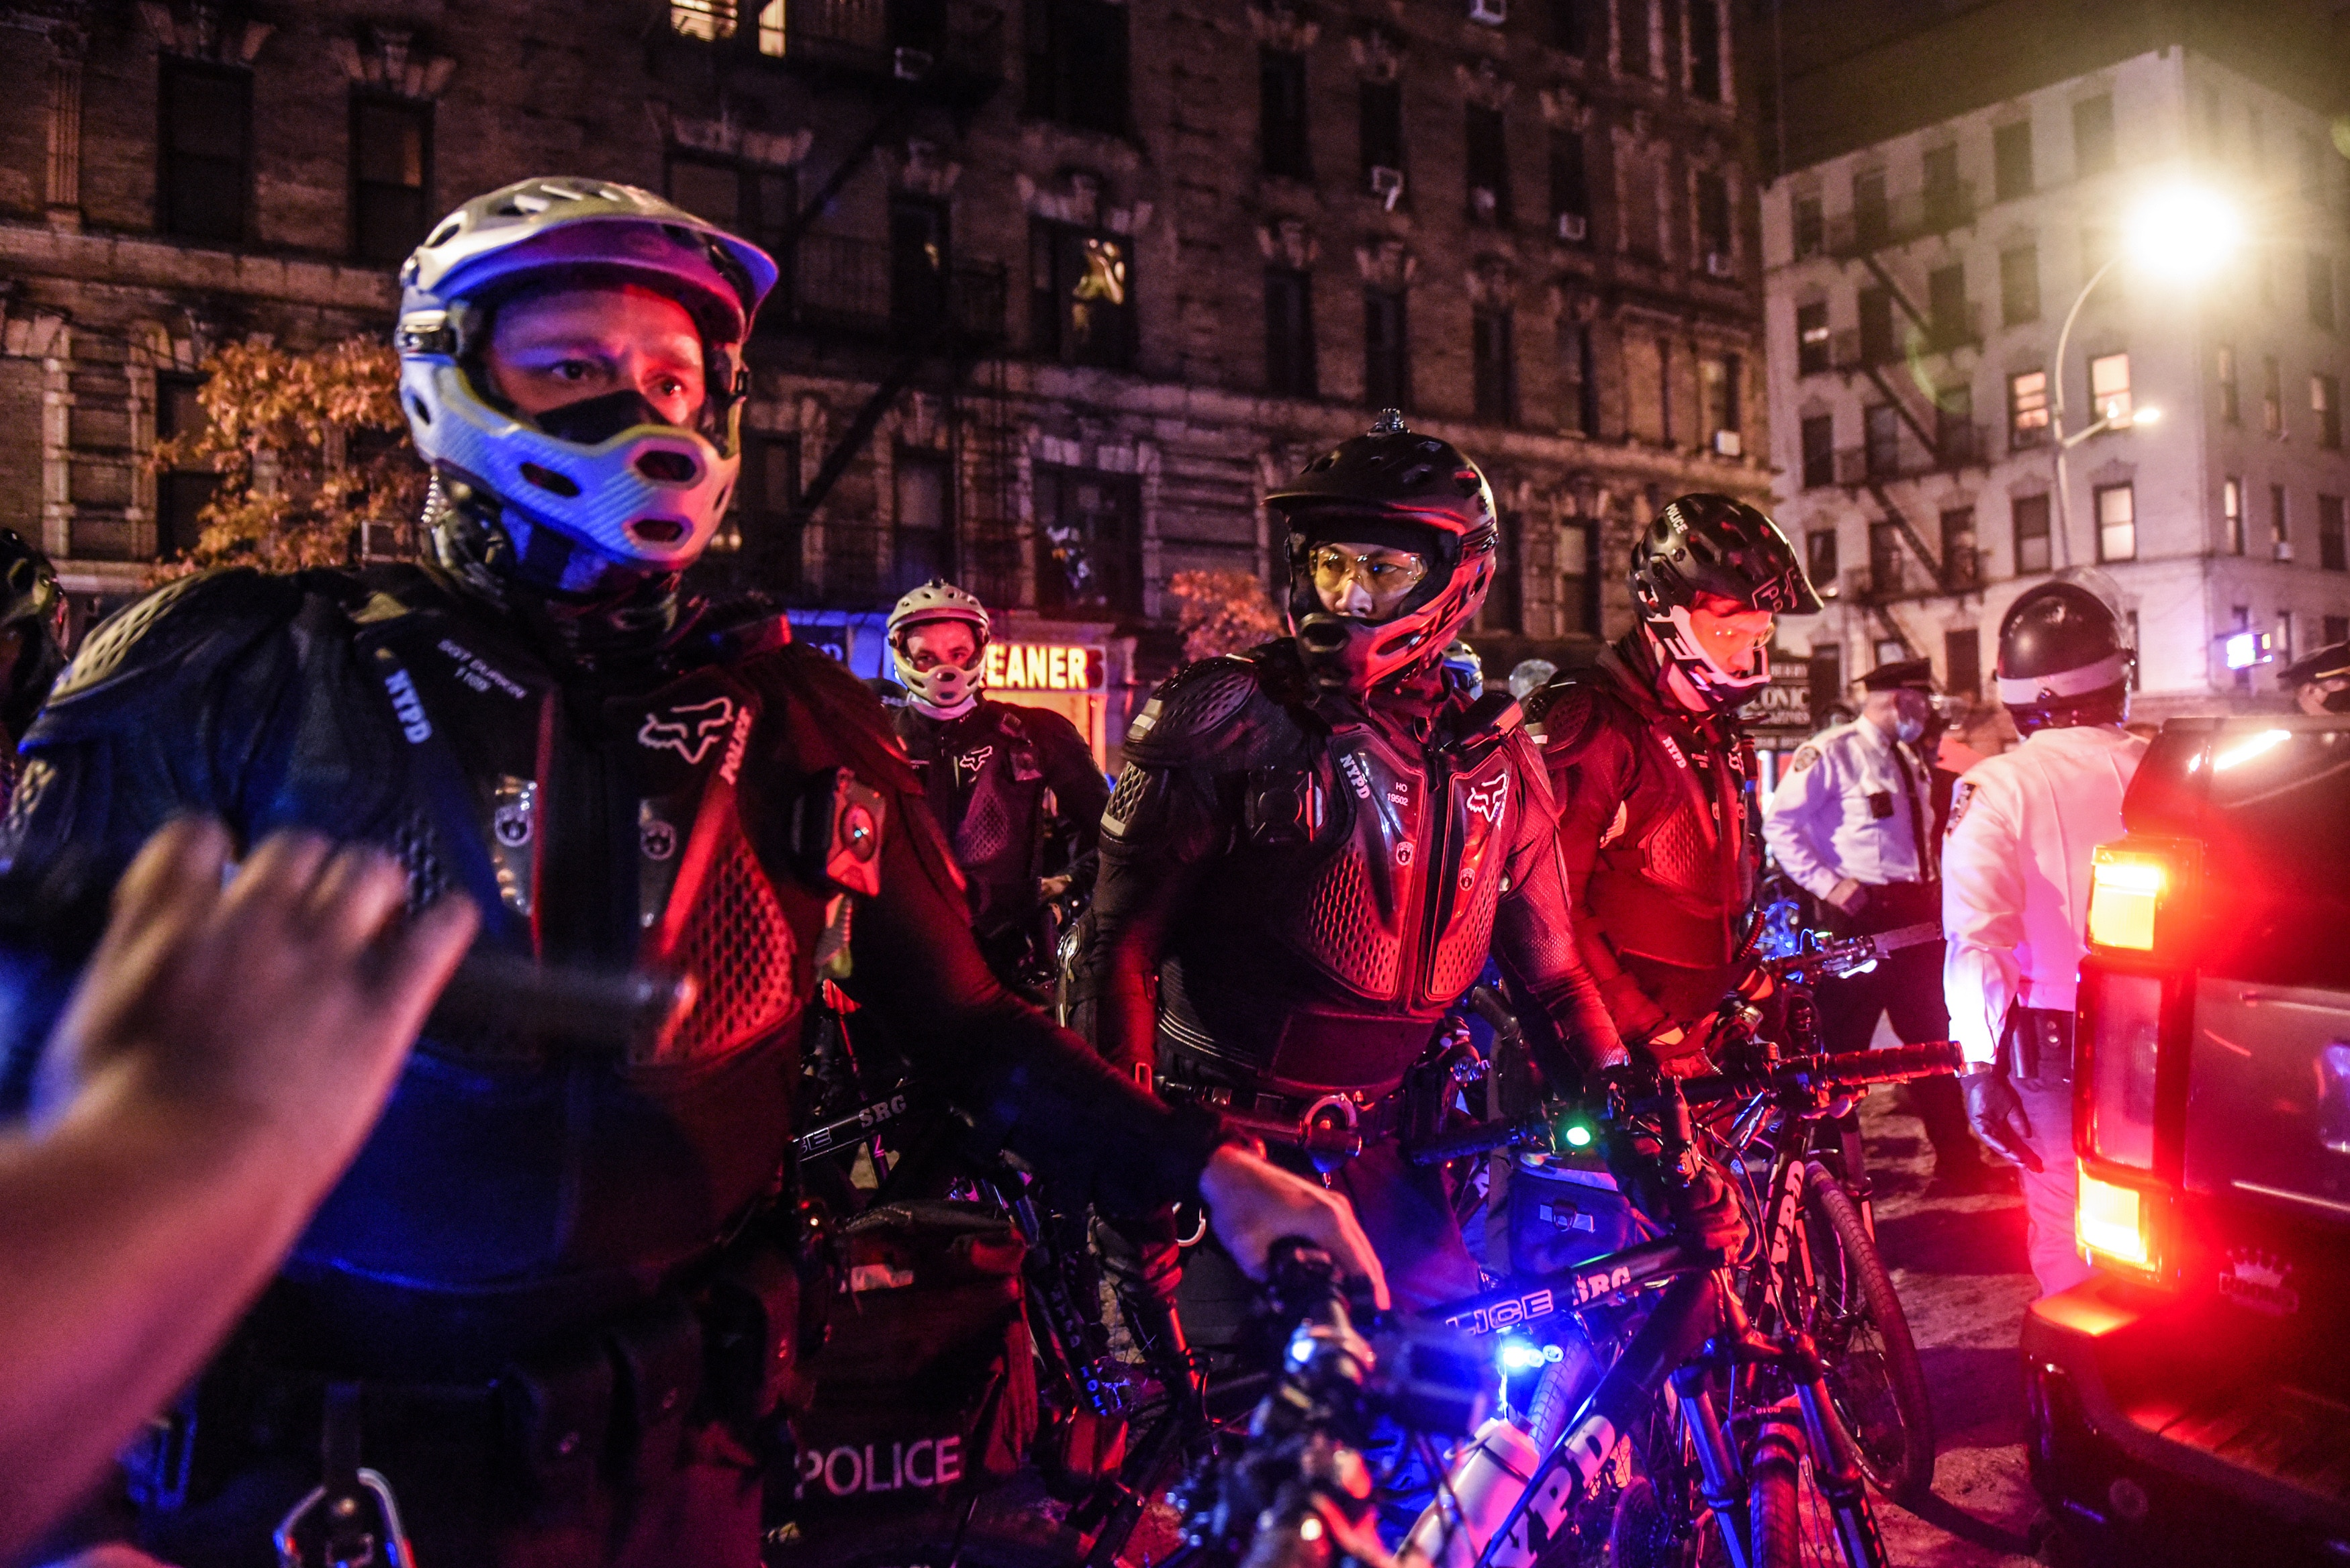 New York Police Department (NYPD) officers stand with bicycles at a protest during the 2020 Presidential election in New York, U.S., on Thursday, Nov. 5, 2020. At least three protests are planned Thursday evening in New York City, including a march near an area that saw a confrontation between police and demonstrators on Wednesday night that resulted in more than two dozen arrests. Photographer: Stephanie Keith/Bloomberg via Getty Images